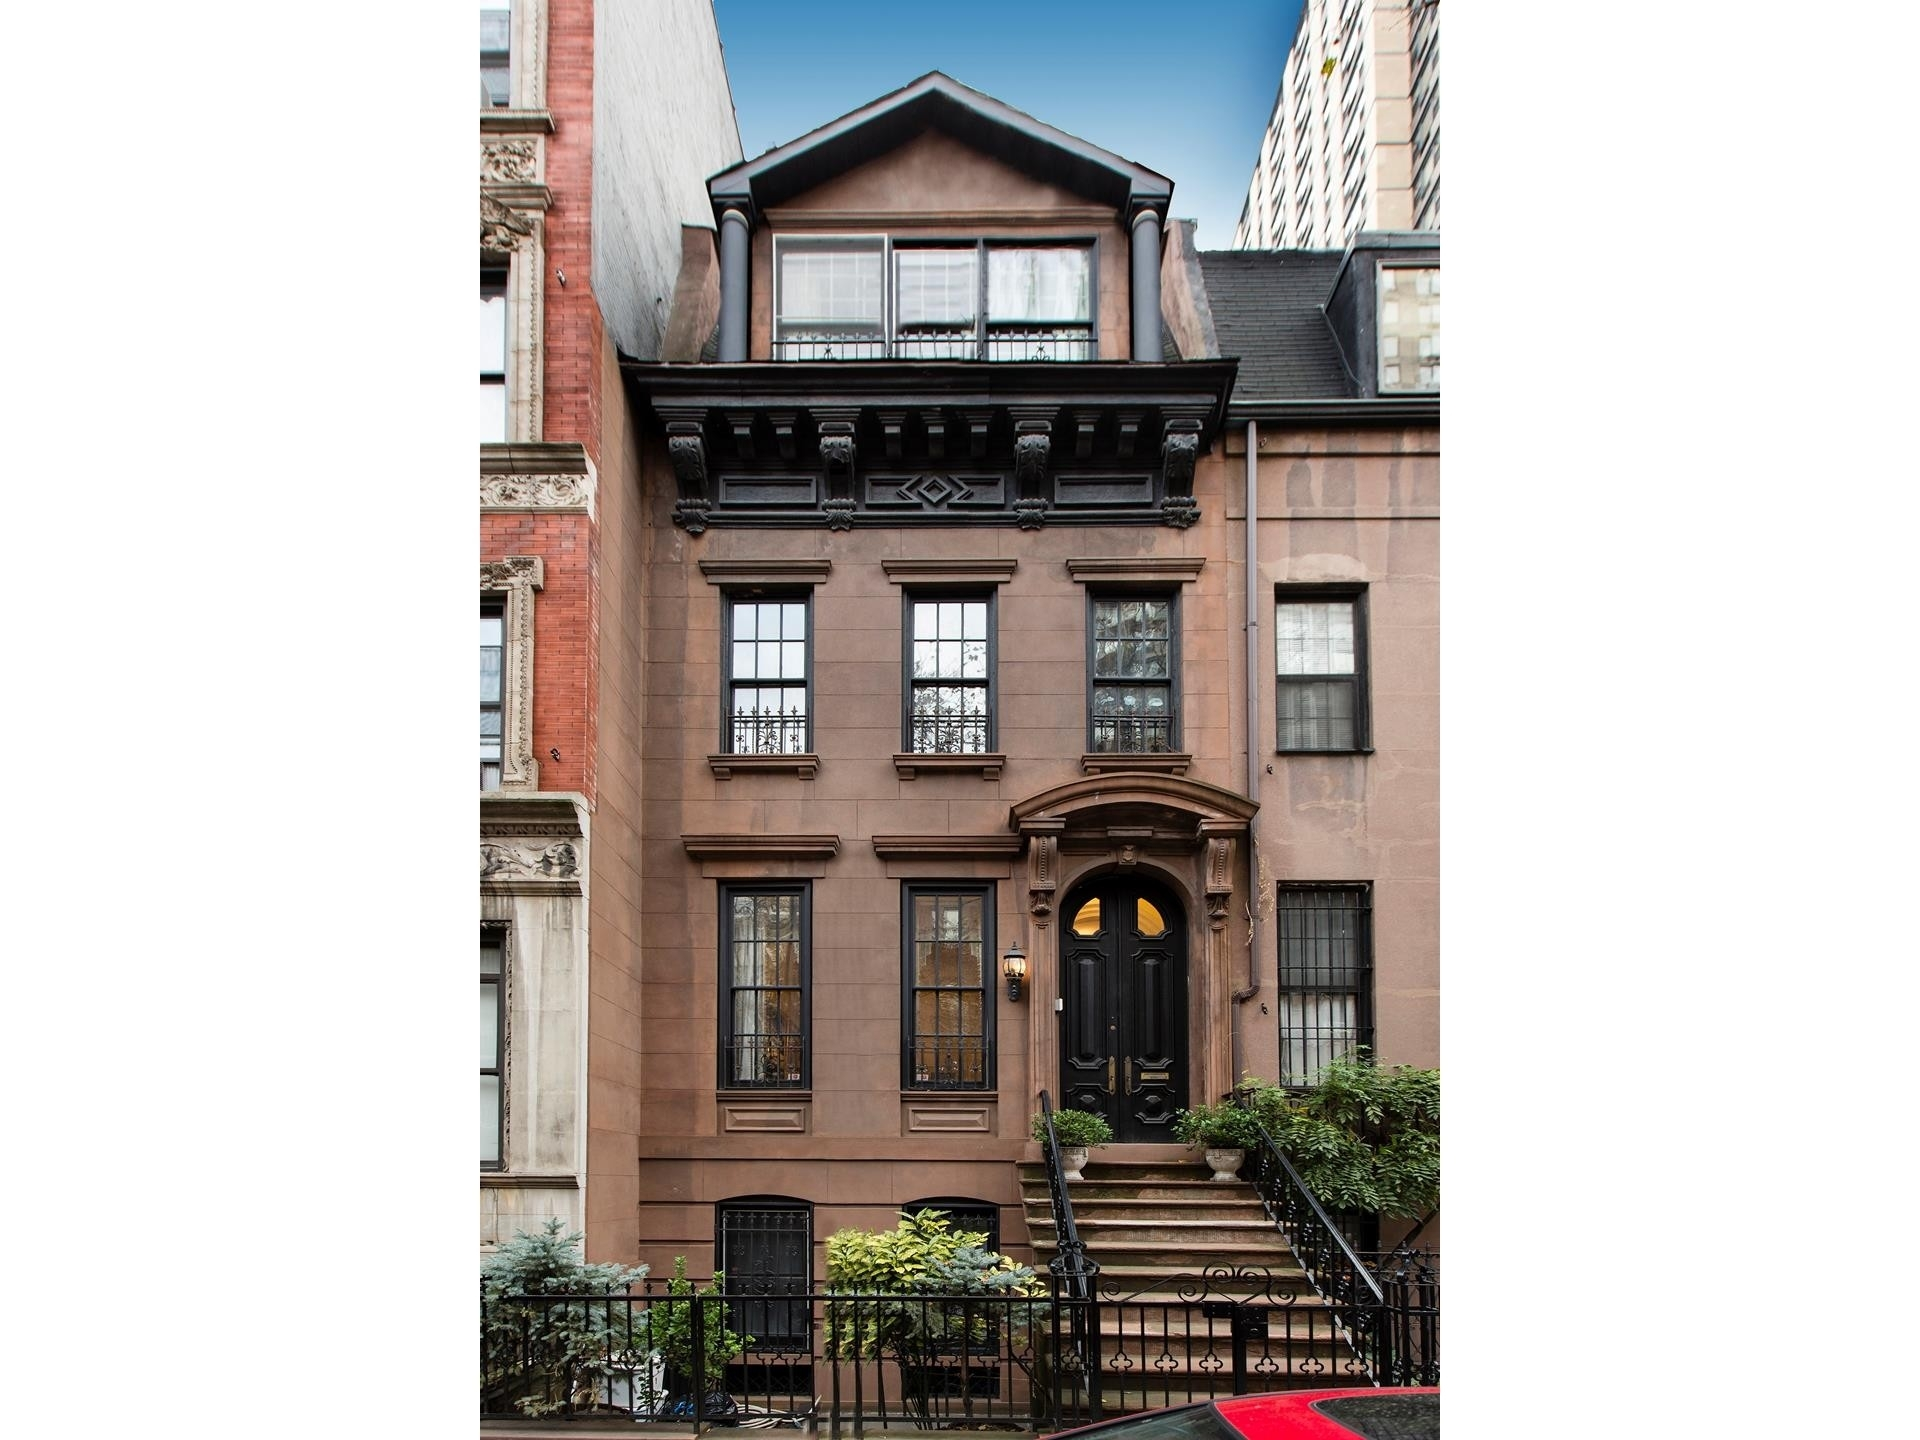 Property à Yorkville, New York, NY 10028